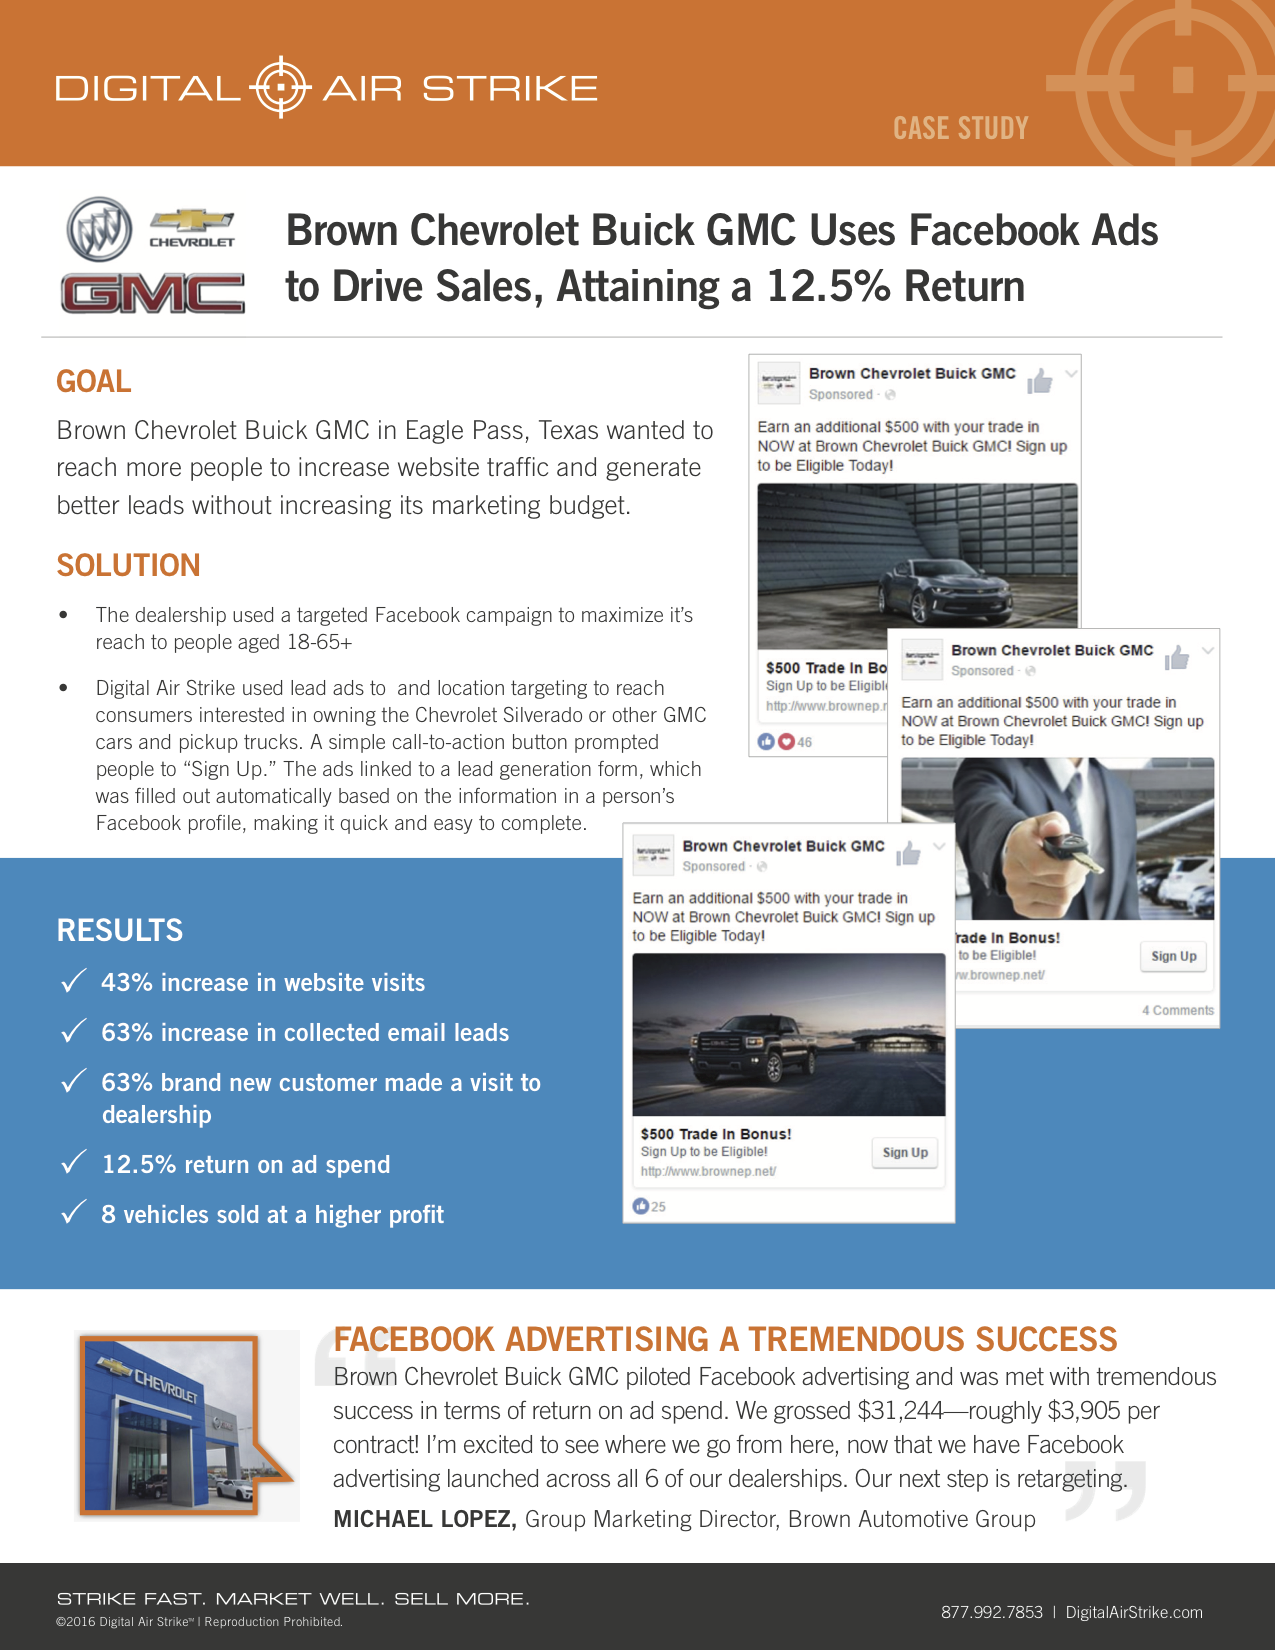 Brown Automotive Group >> Digital Air Strike Brown Automotive Group Facebook